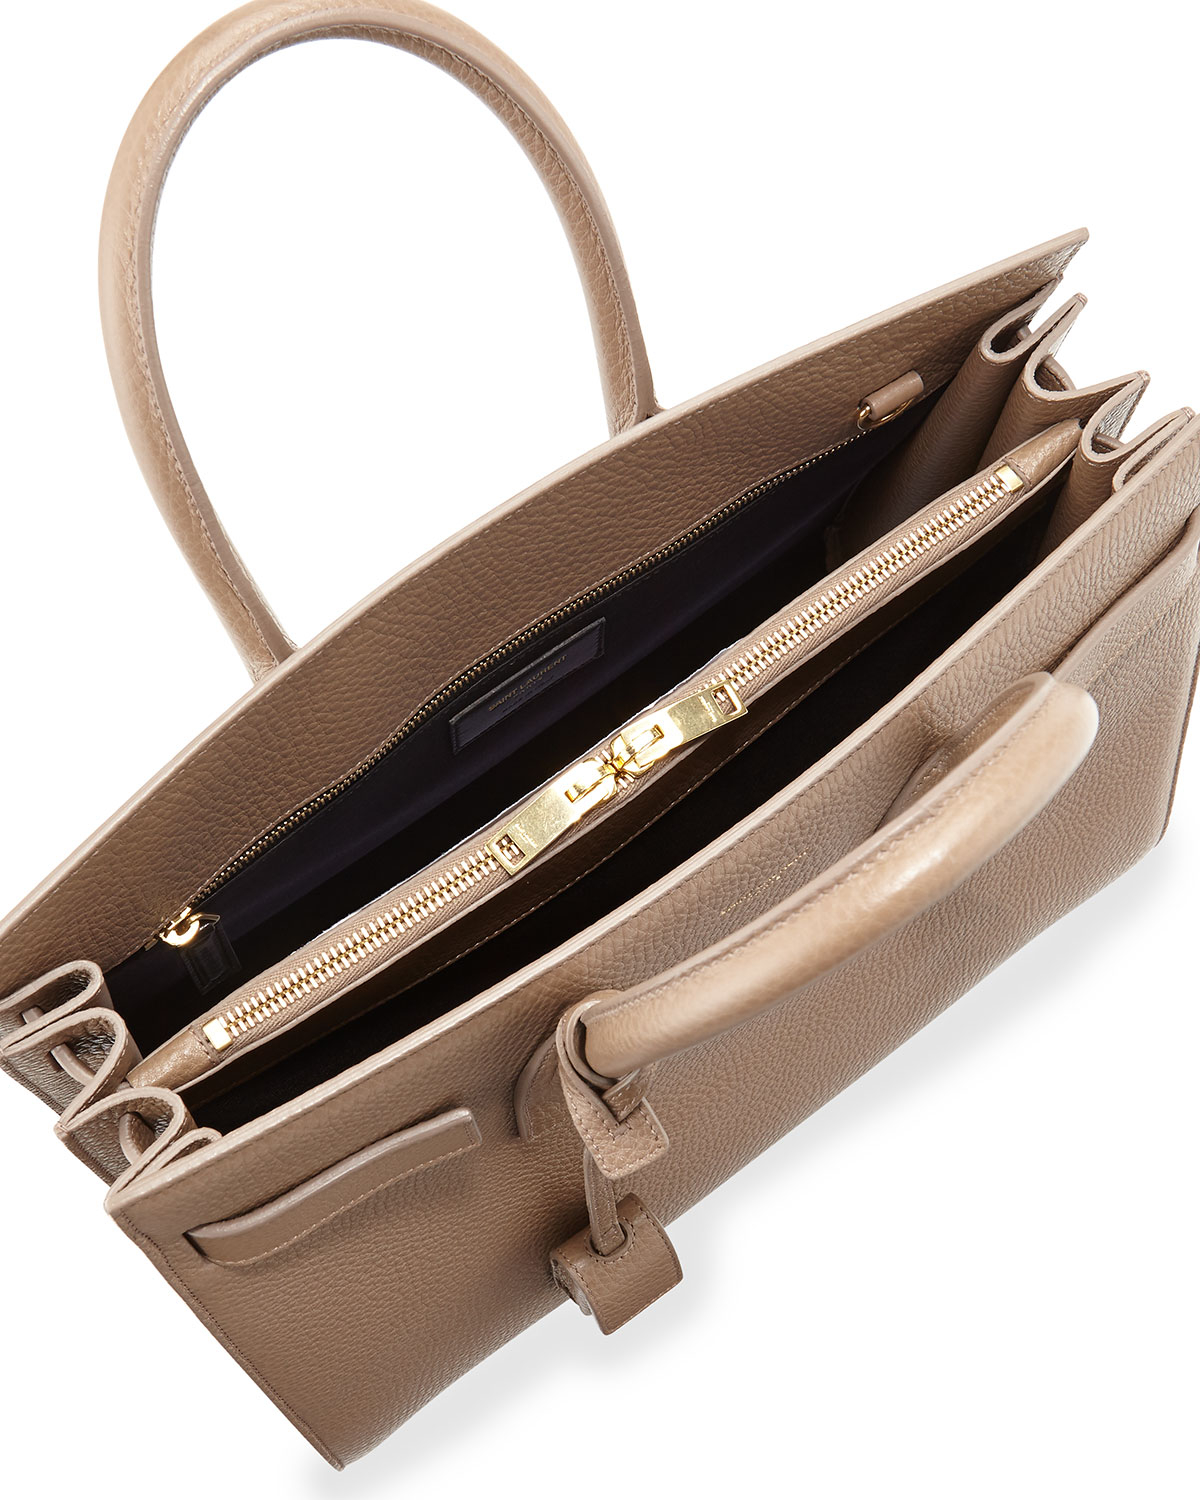 Small Cabas Rive Gauche Bag In Fog Grained Leather